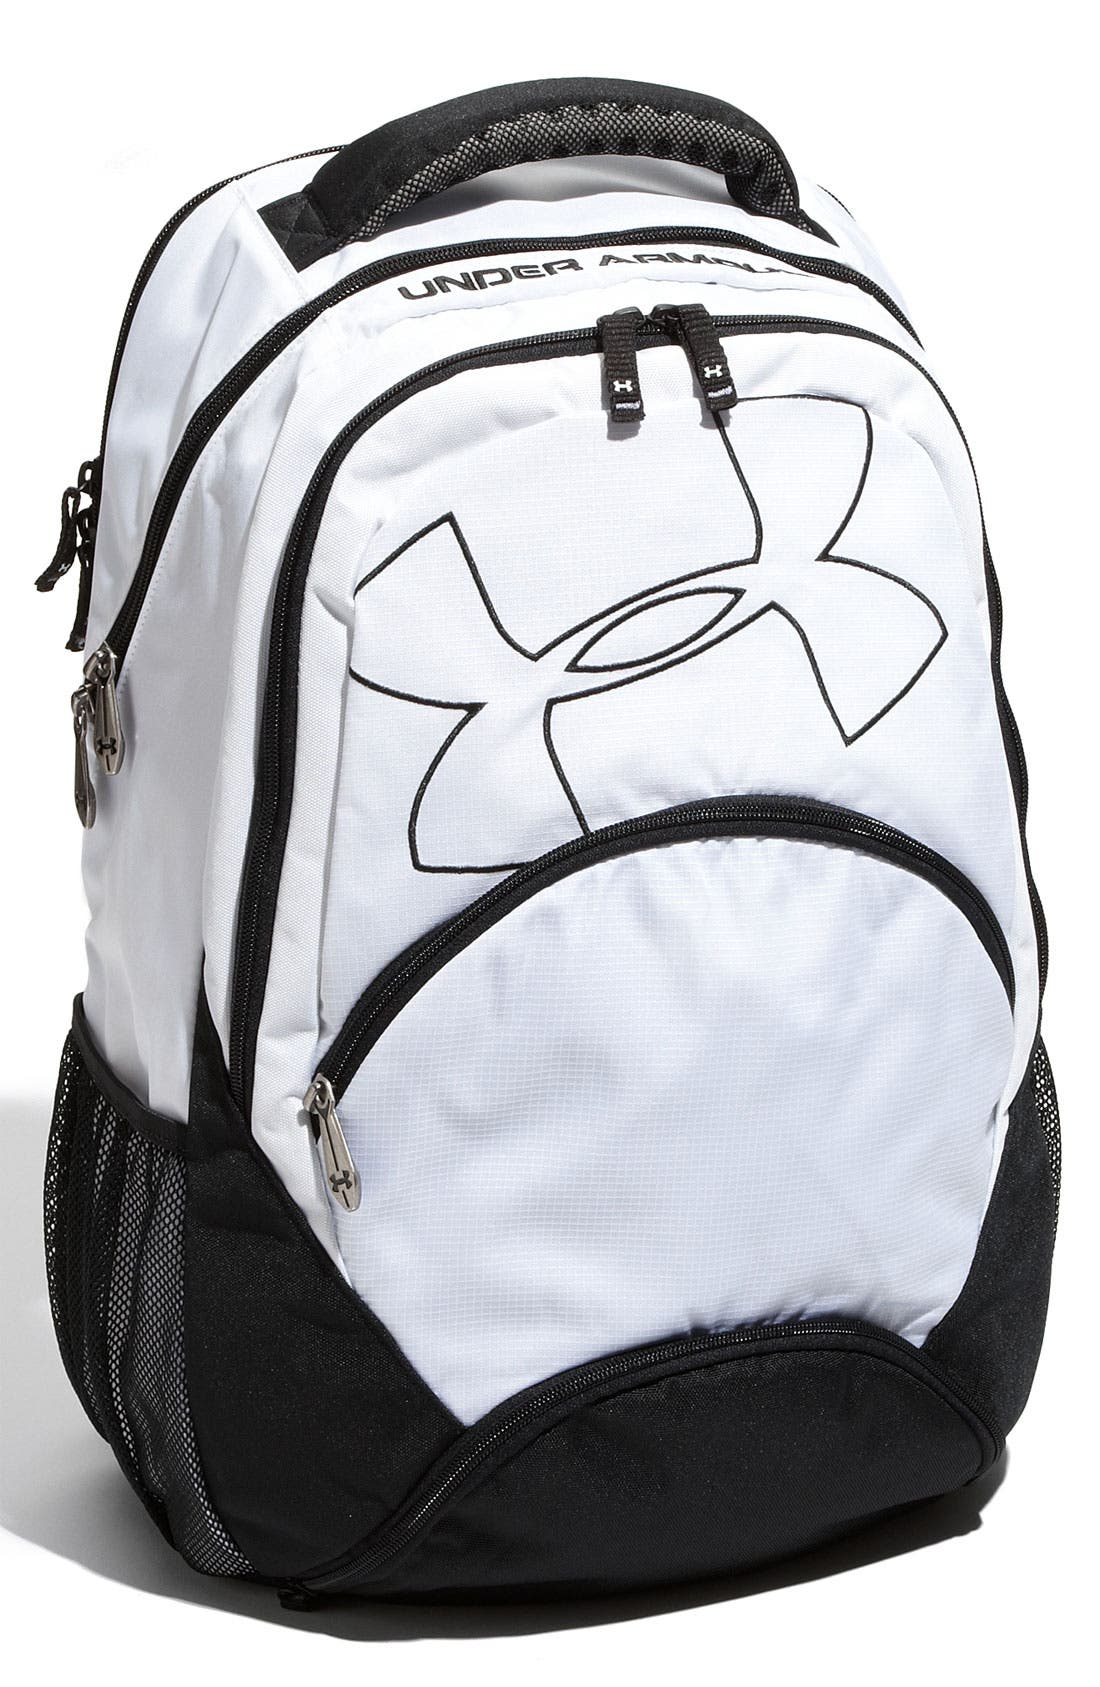 Main Image - Under Armour 'Protego' Backpack